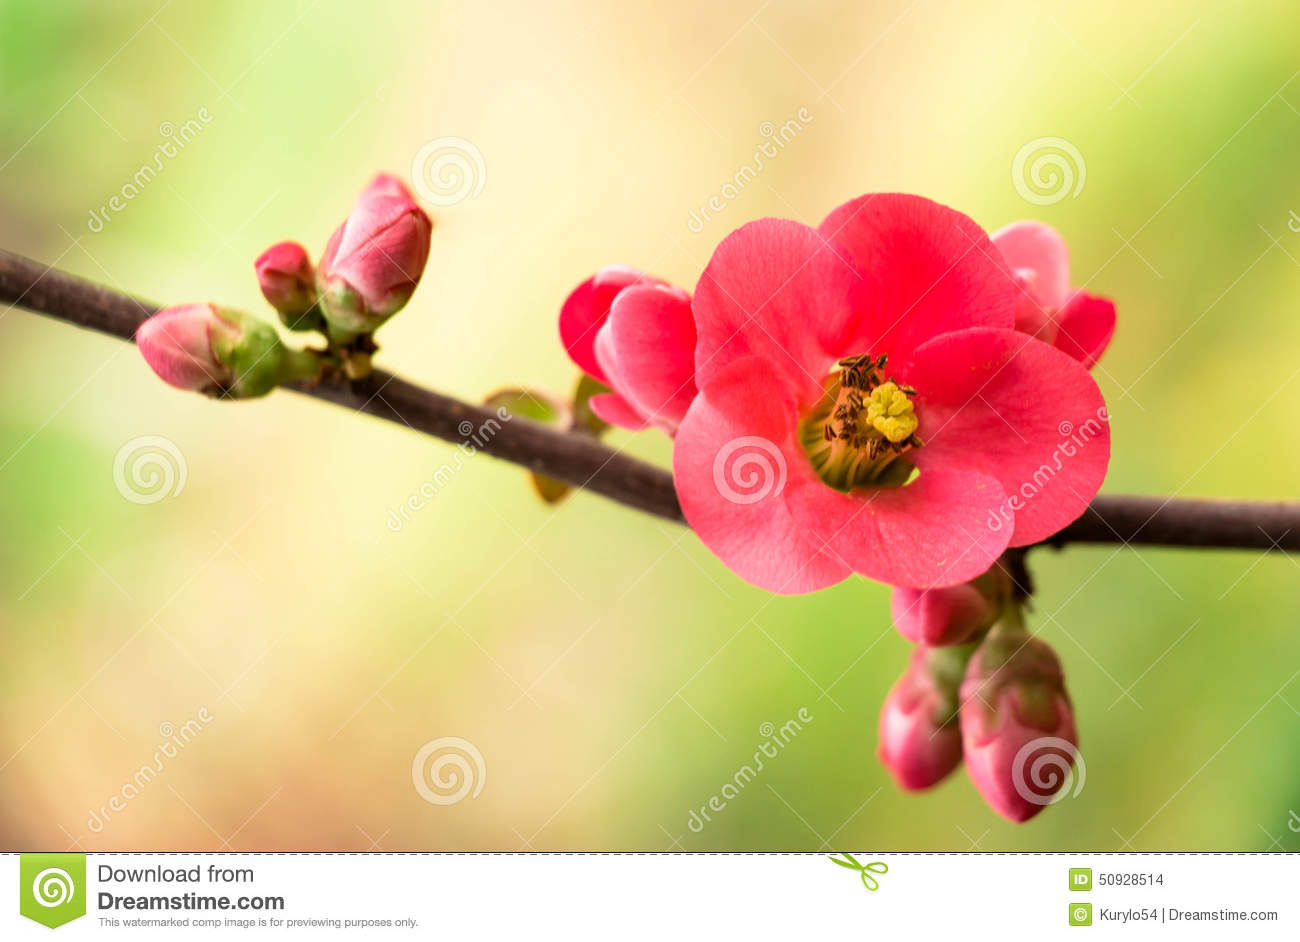 Spring flower sprig with pink flowers the beginning of spring download spring flower sprig with pink flowers the beginning of spring stock photo mightylinksfo